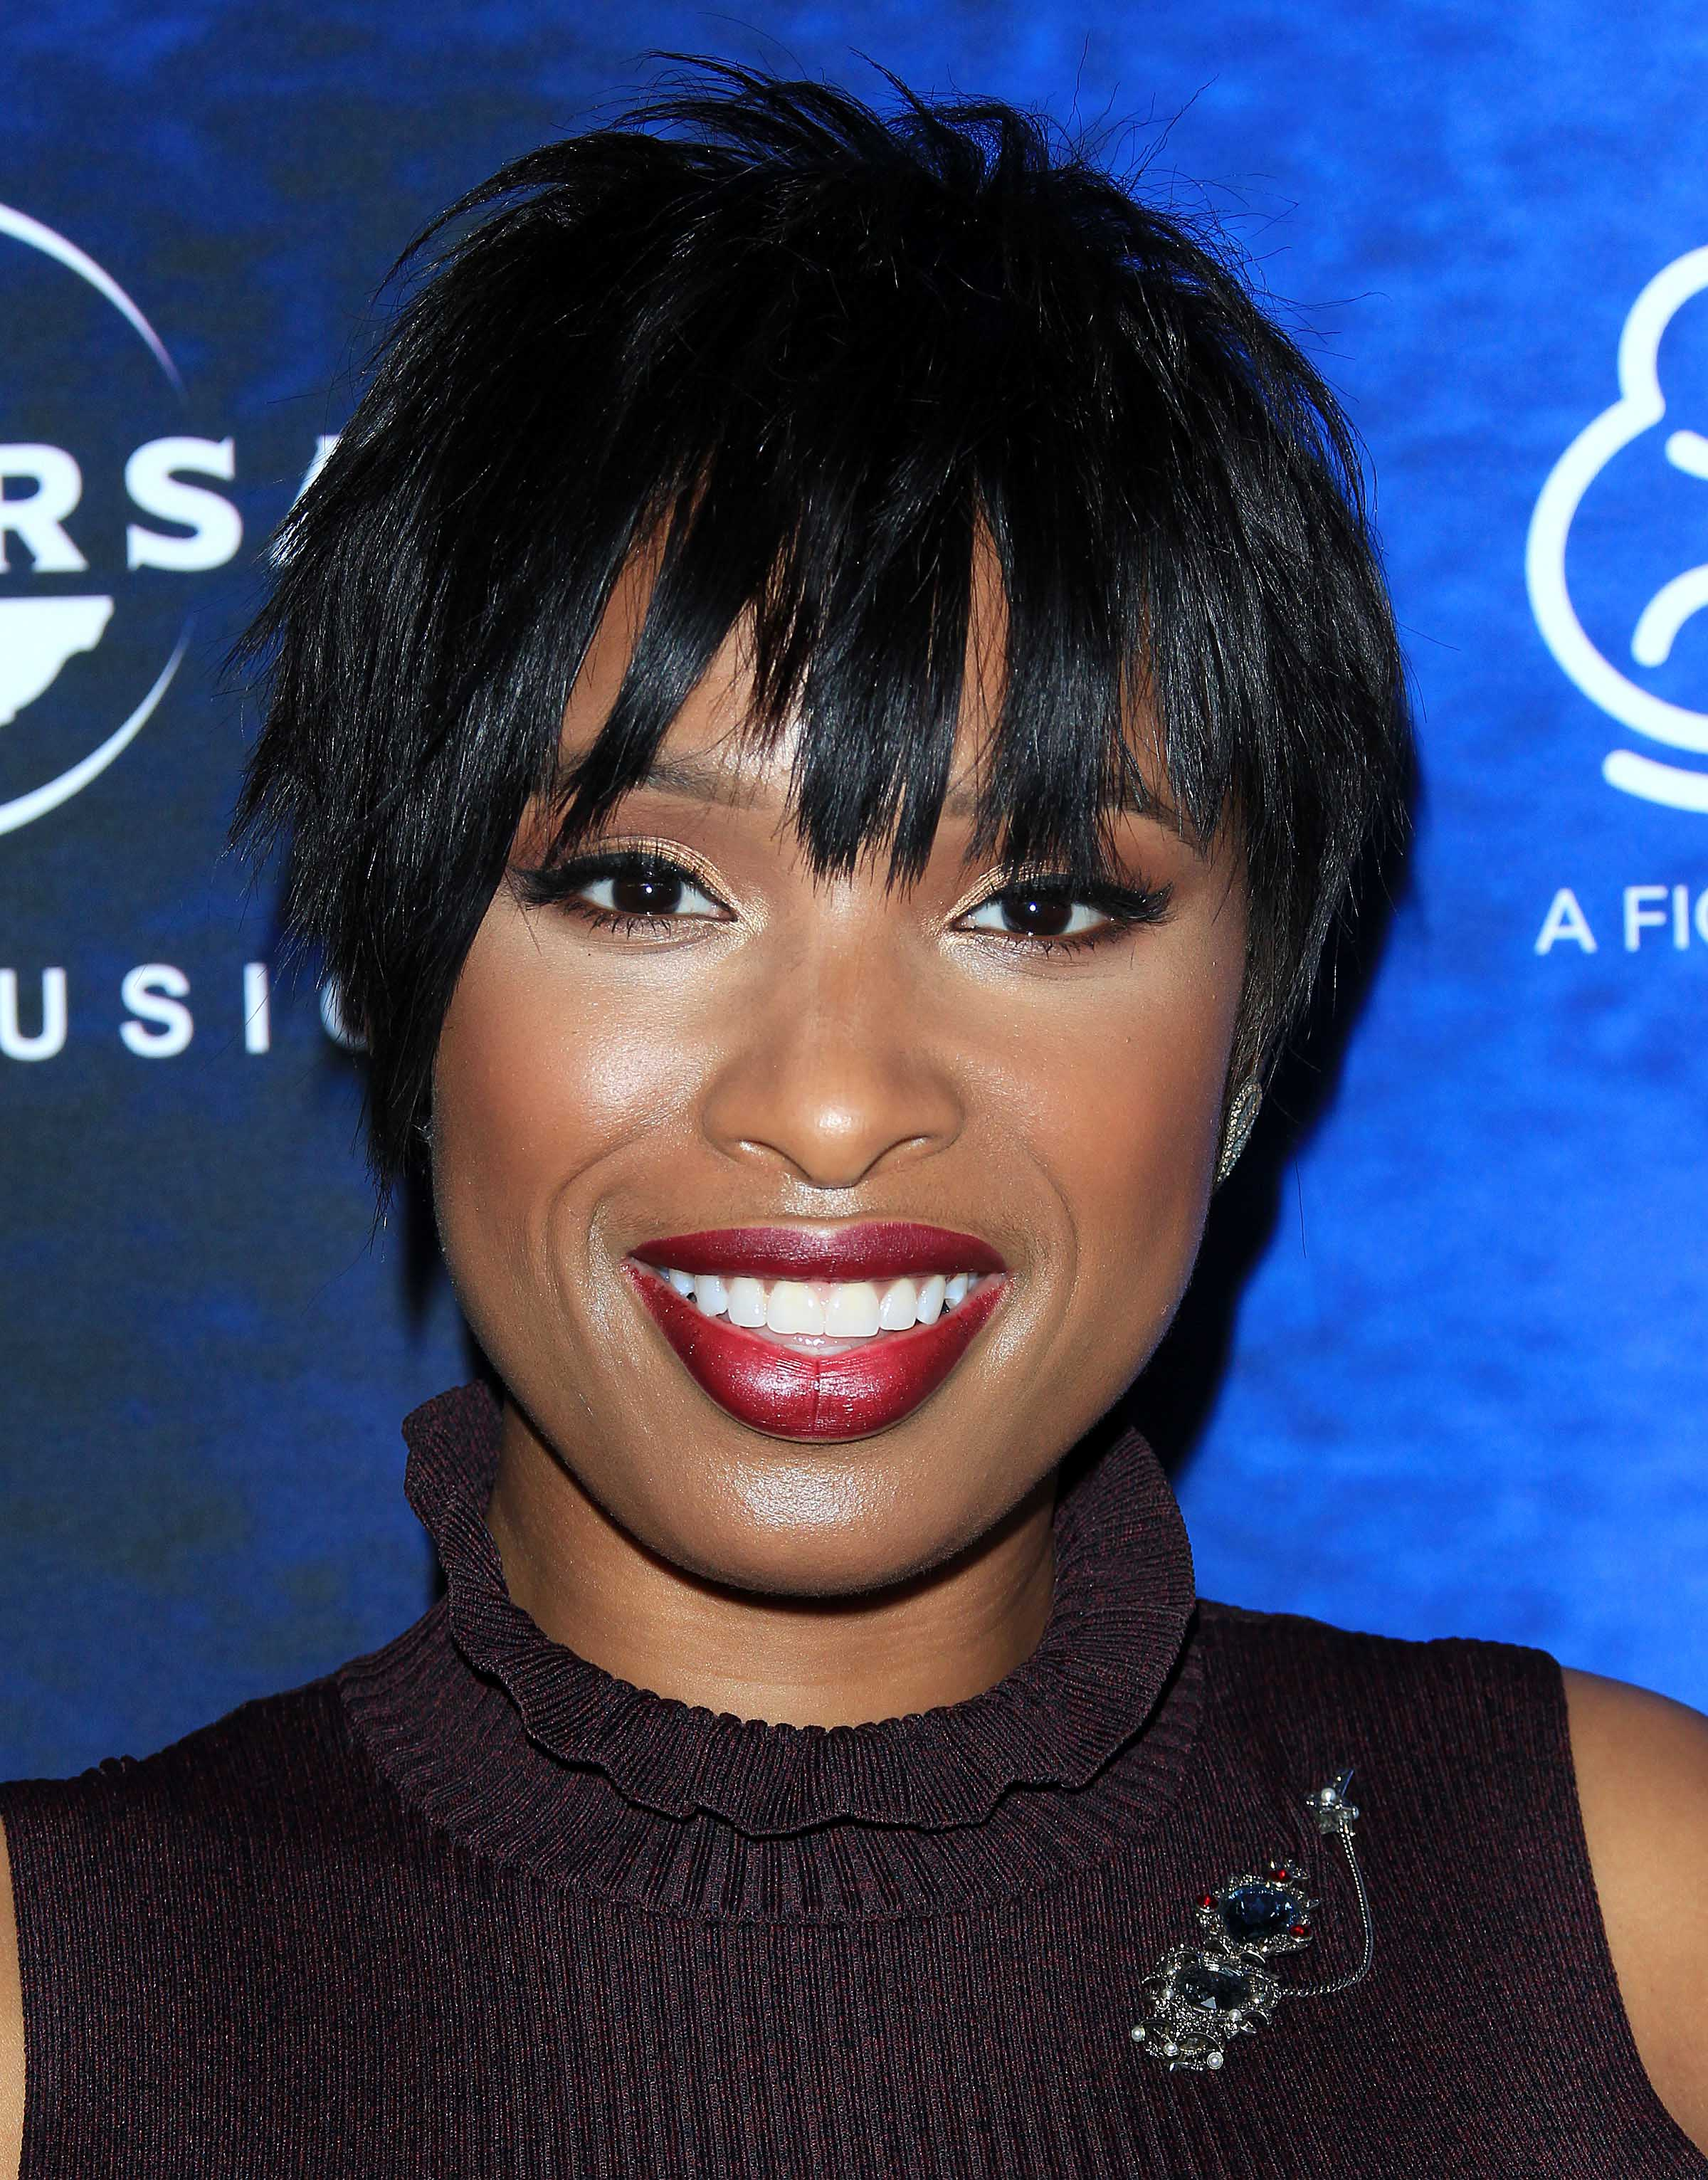 celebrity hair: All Things Hair - IMAGE - 2016 Jennifer Hudson pixie crop